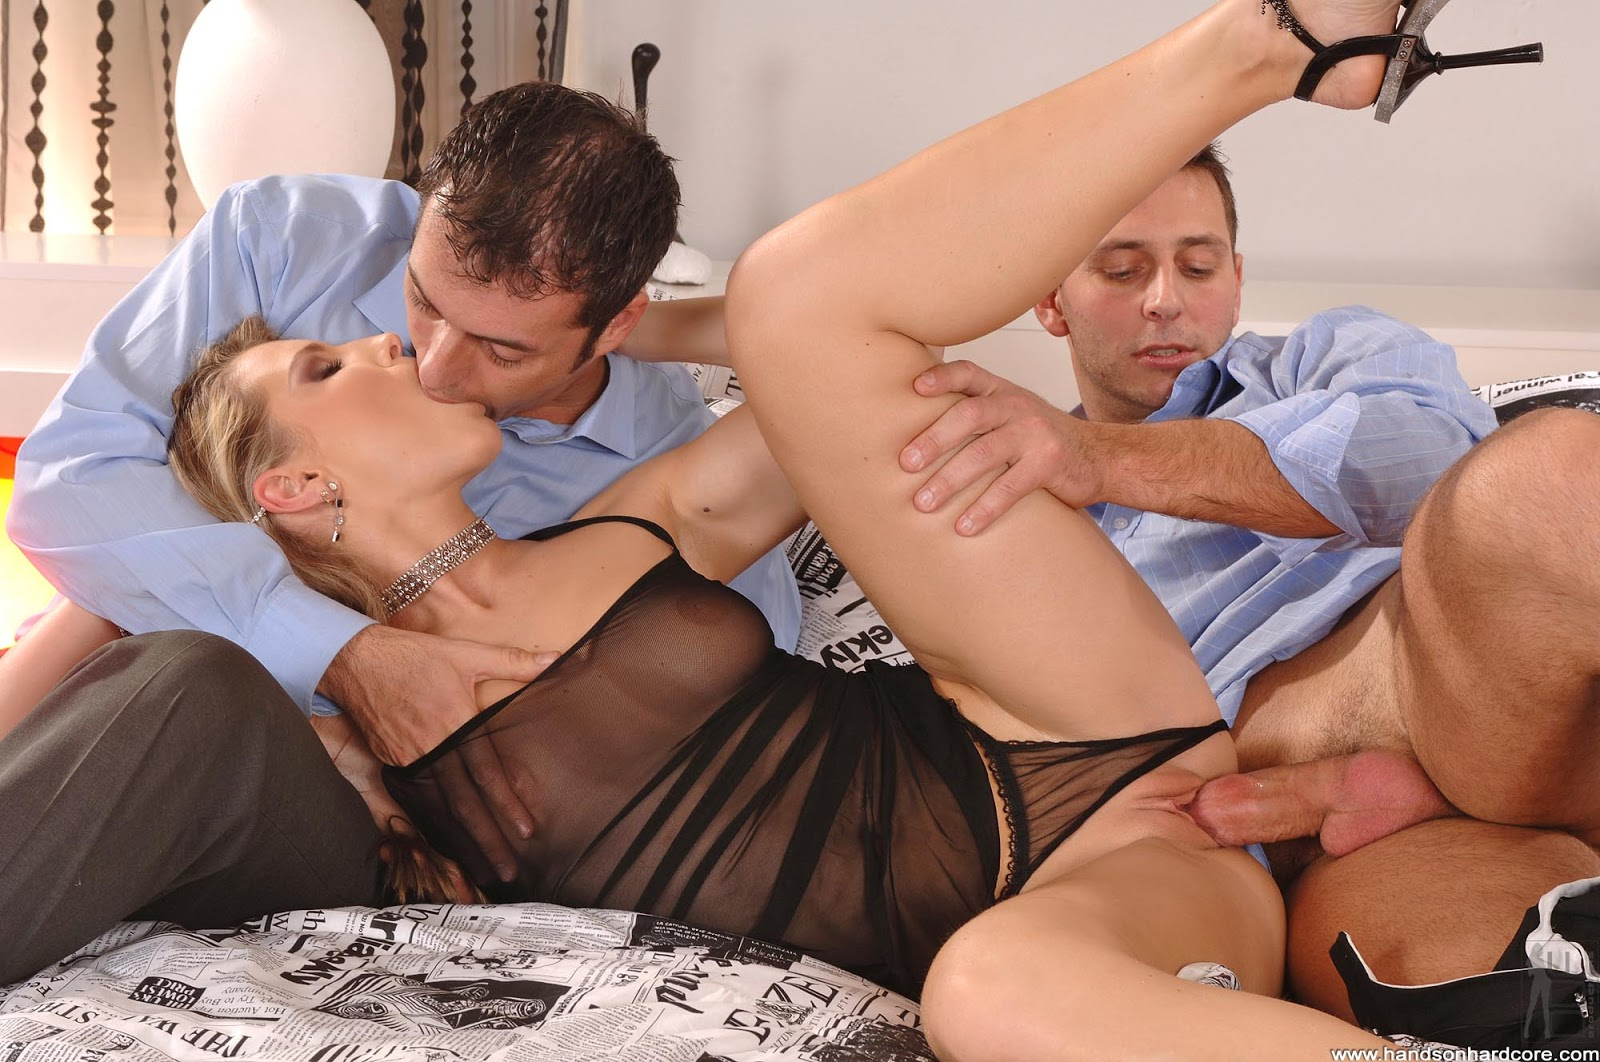 real bdsm amateur